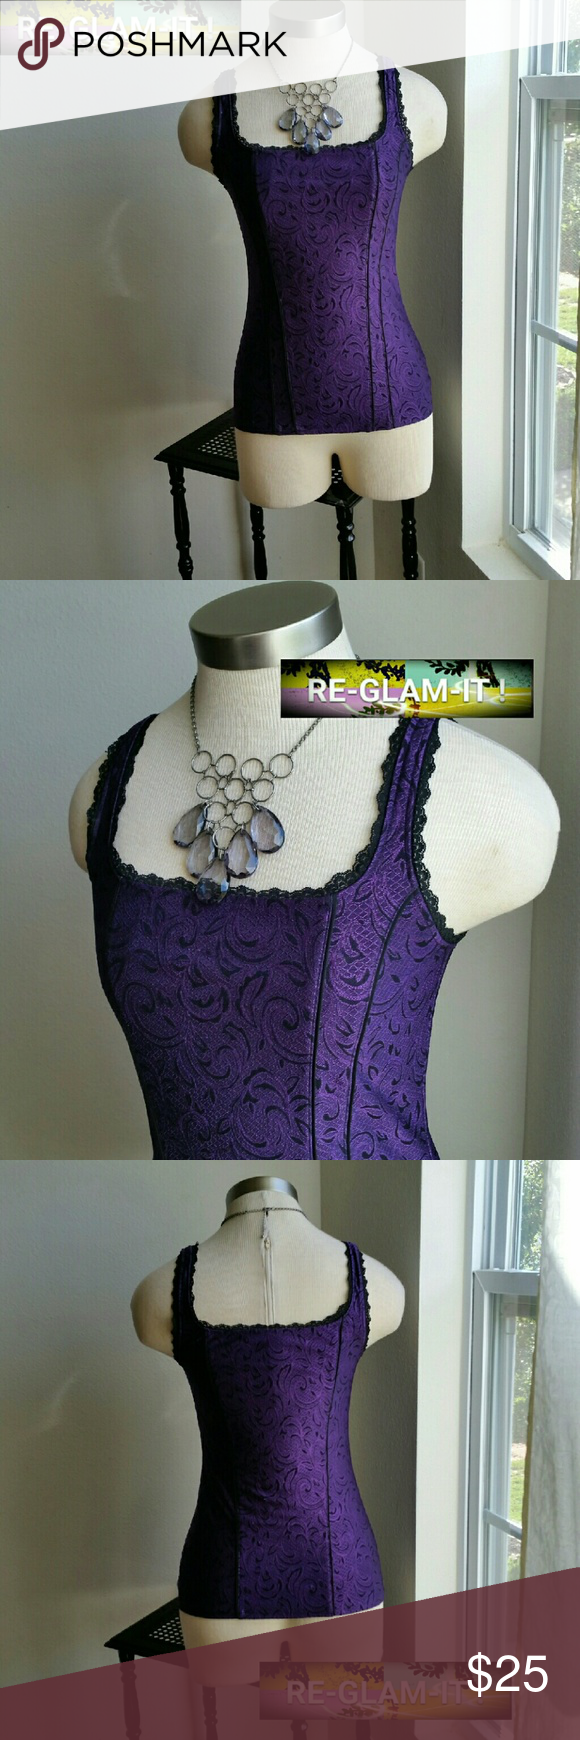 3 DAY SALE....WHBM......GORGEOUS PURPLE TOP.... ....ADDING INFO SOON...EXCELLENT CONDITION ....LIKE NEW...NO FLAWS White House Black Market Tops Blouses